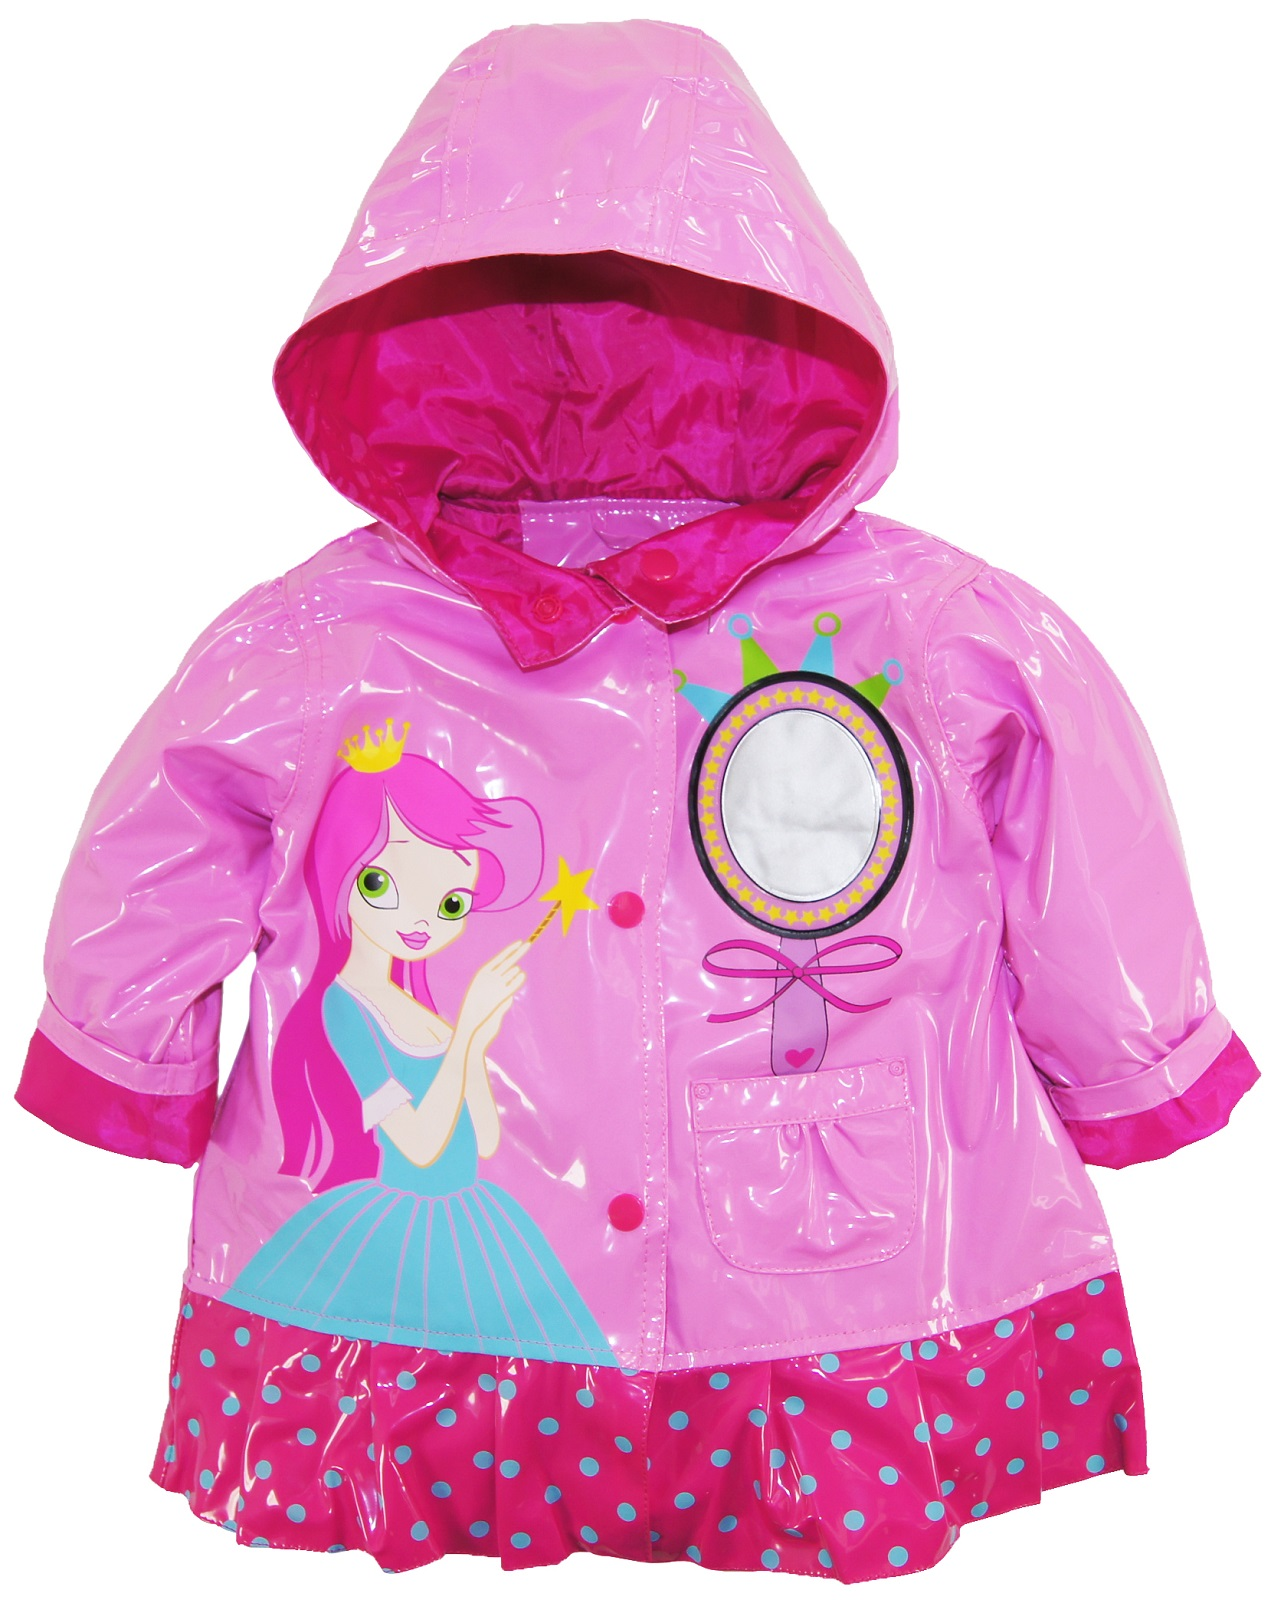 Shop for raincoats for baby girls online at Target. Free shipping on purchases over $35 and save 5% every day with your Target REDcard.